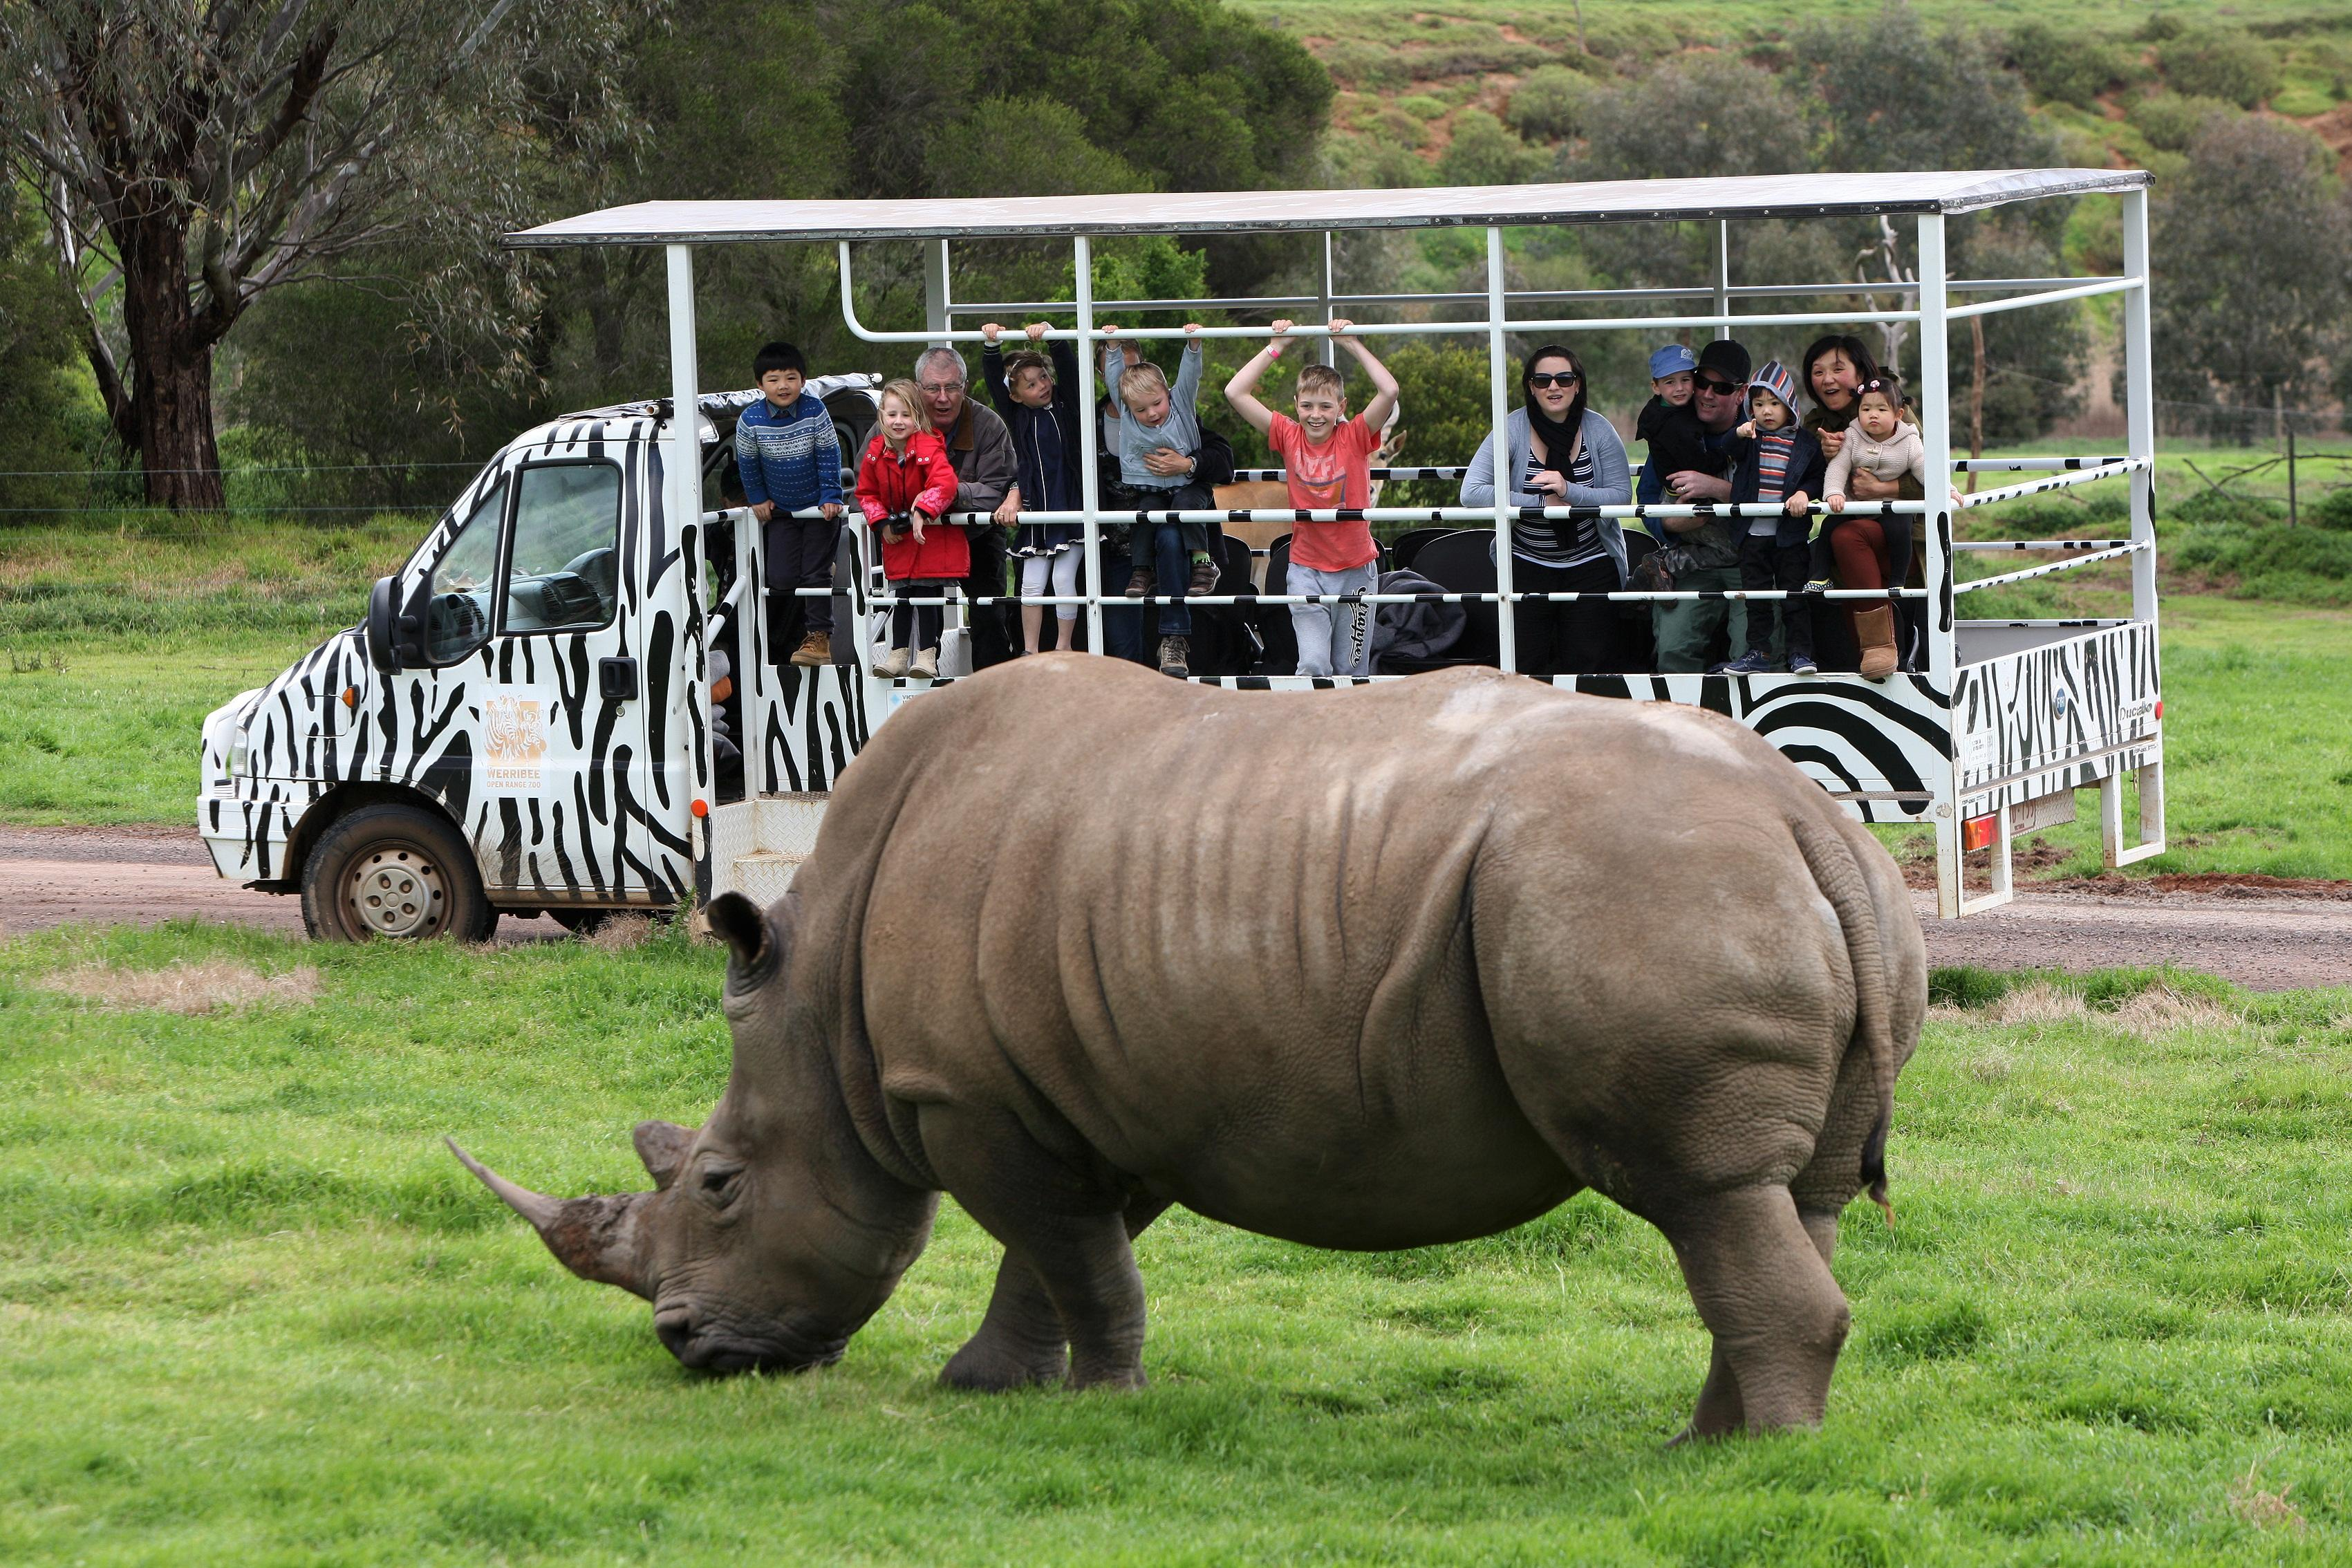 Family Off Road Safari - Werribee Open Range Zoo.jpg